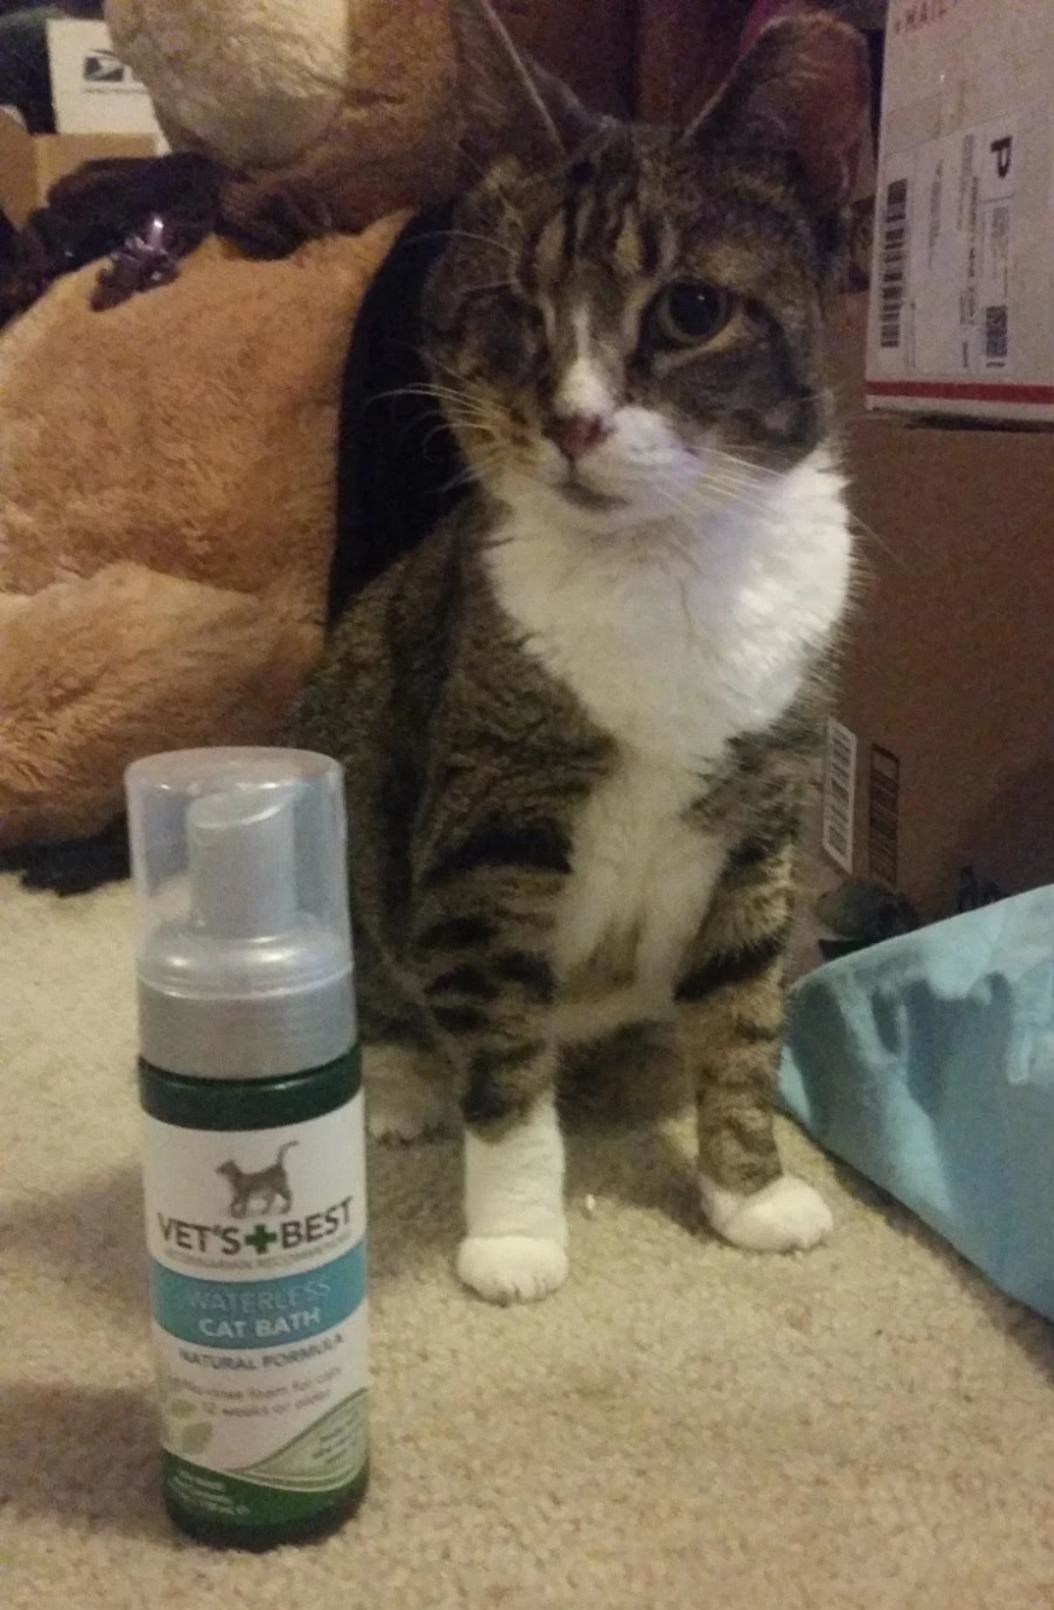 A reviewer's cat sitting next to a bottle of waterless pet wash